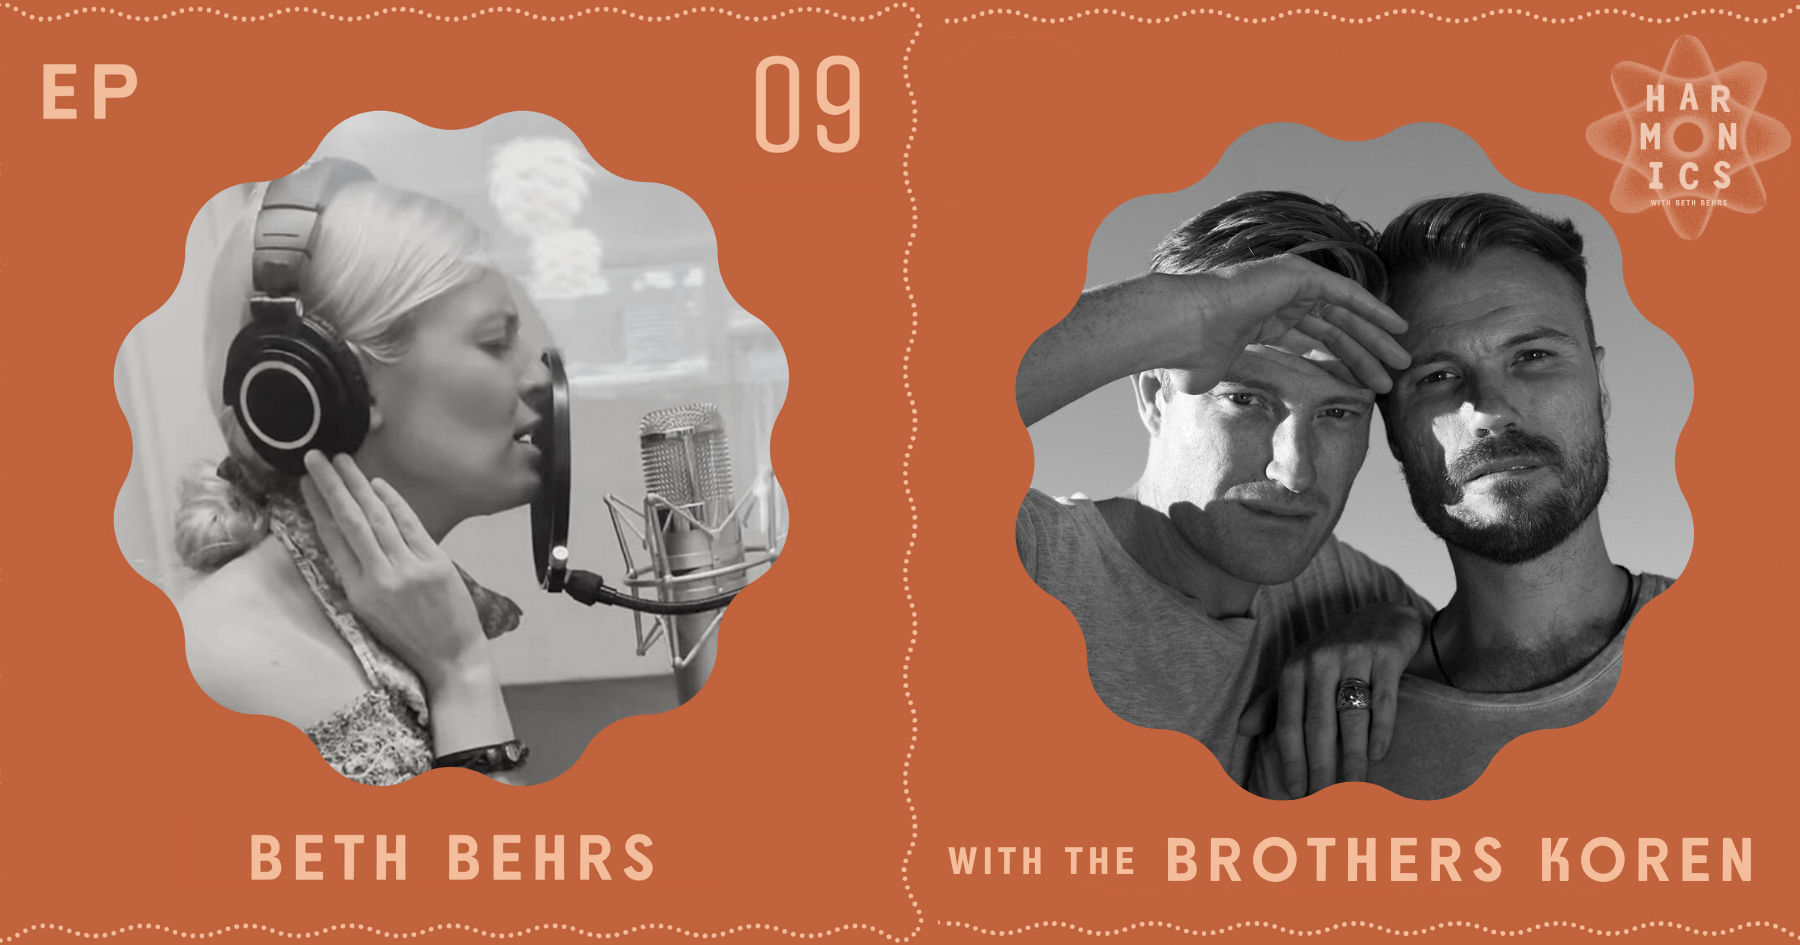 Harmonics with Beth Behrs: Episode 9, The Brothers Koren